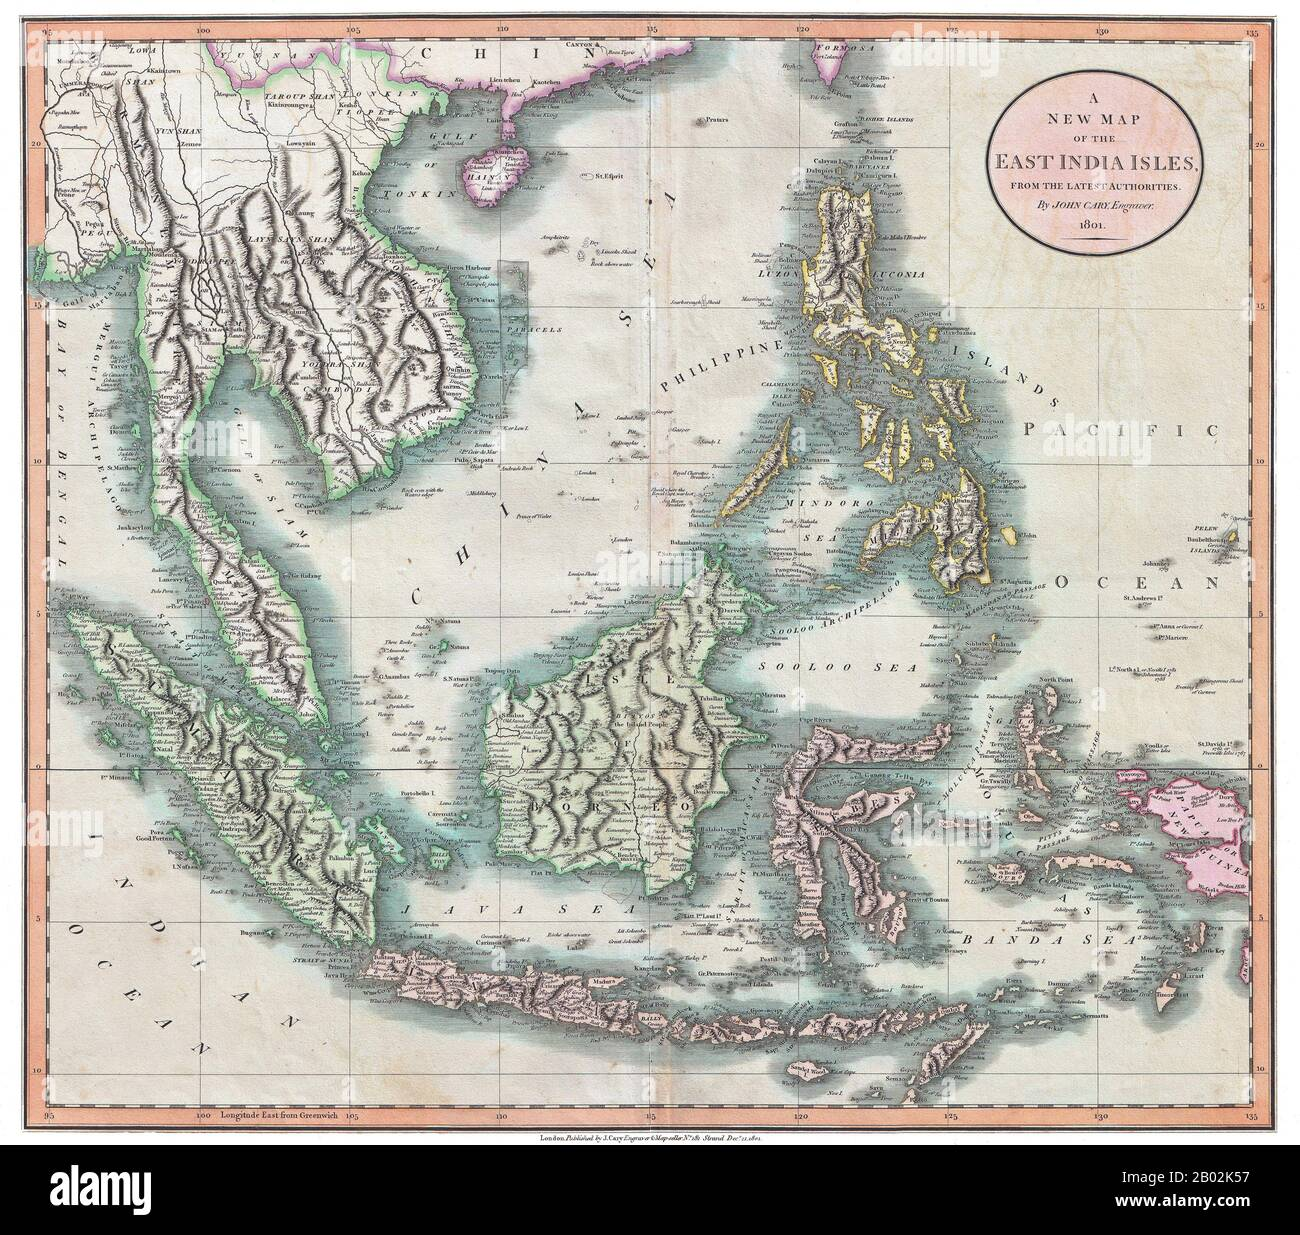 Picture of: Map Of Mainland Southeast Asia Including Burma Myanmar Lan Na Now Northern Thailand Siam Thailand Laos Cambodia Vietnam Champa Malaya Indonesia And The Philippines Pulau Pinang Penang Island Is Shown